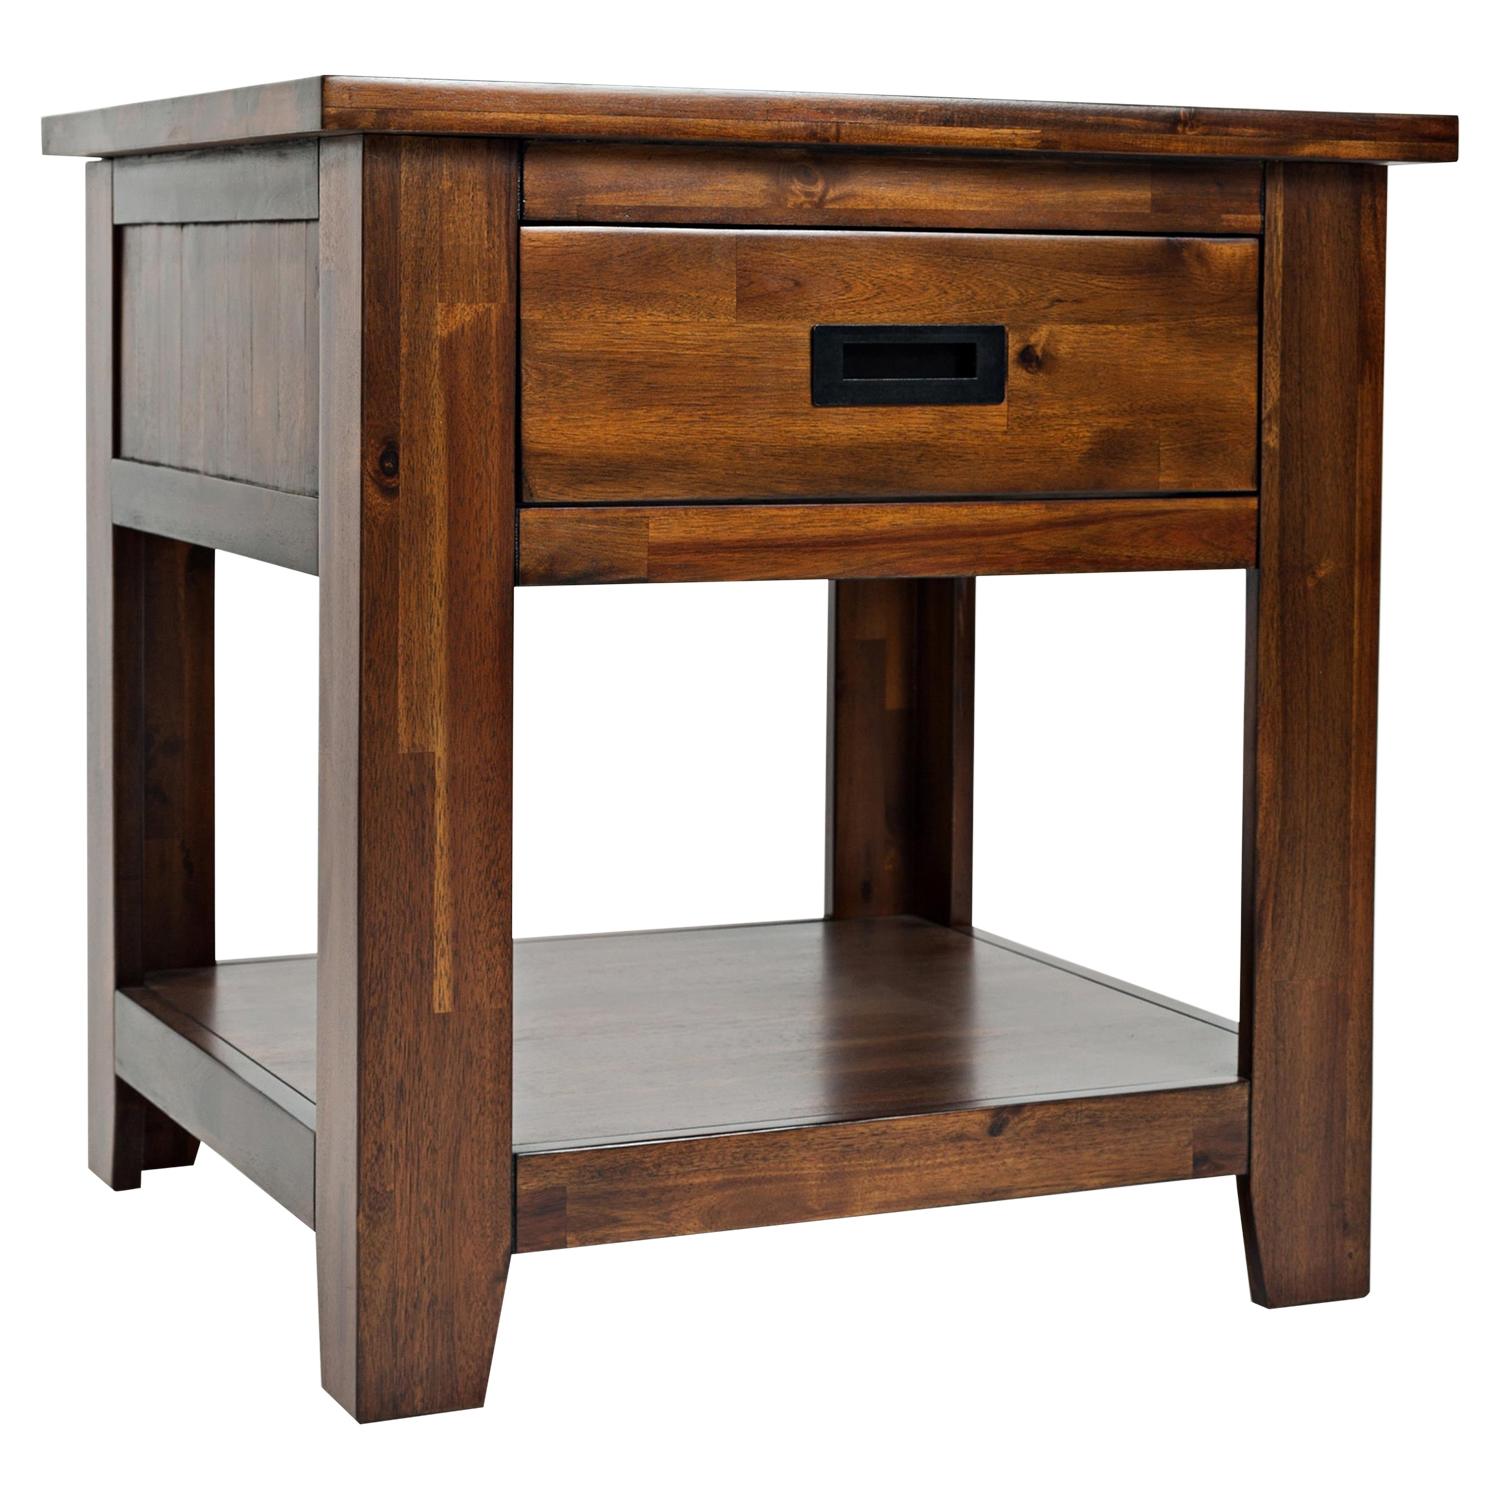 Coolidge Corner Square End Table - JOFR-1500-3